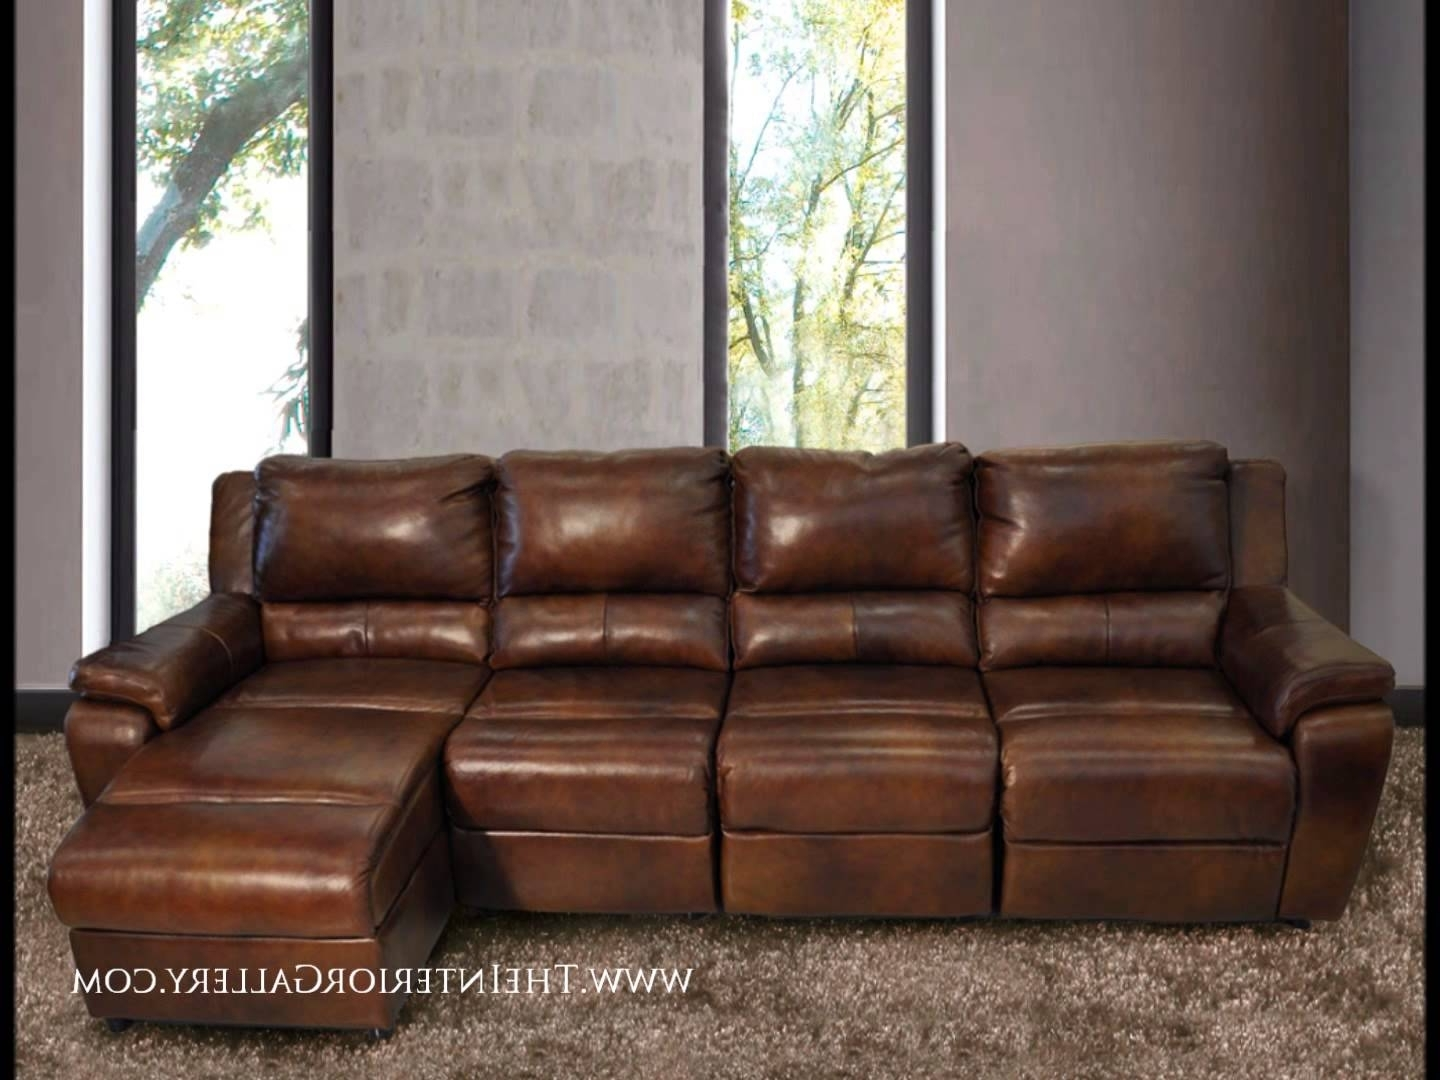 [%Modern Leather Sofa Set Genuine 100% Leather – Youtube With 2018 Genuine Leather Sectionals With Chaise|Genuine Leather Sectionals With Chaise Intended For Most Recent Modern Leather Sofa Set Genuine 100% Leather – Youtube|Trendy Genuine Leather Sectionals With Chaise Intended For Modern Leather Sofa Set Genuine 100% Leather – Youtube|Most Up To Date Modern Leather Sofa Set Genuine 100% Leather – Youtube Throughout Genuine Leather Sectionals With Chaise%] (View 1 of 15)